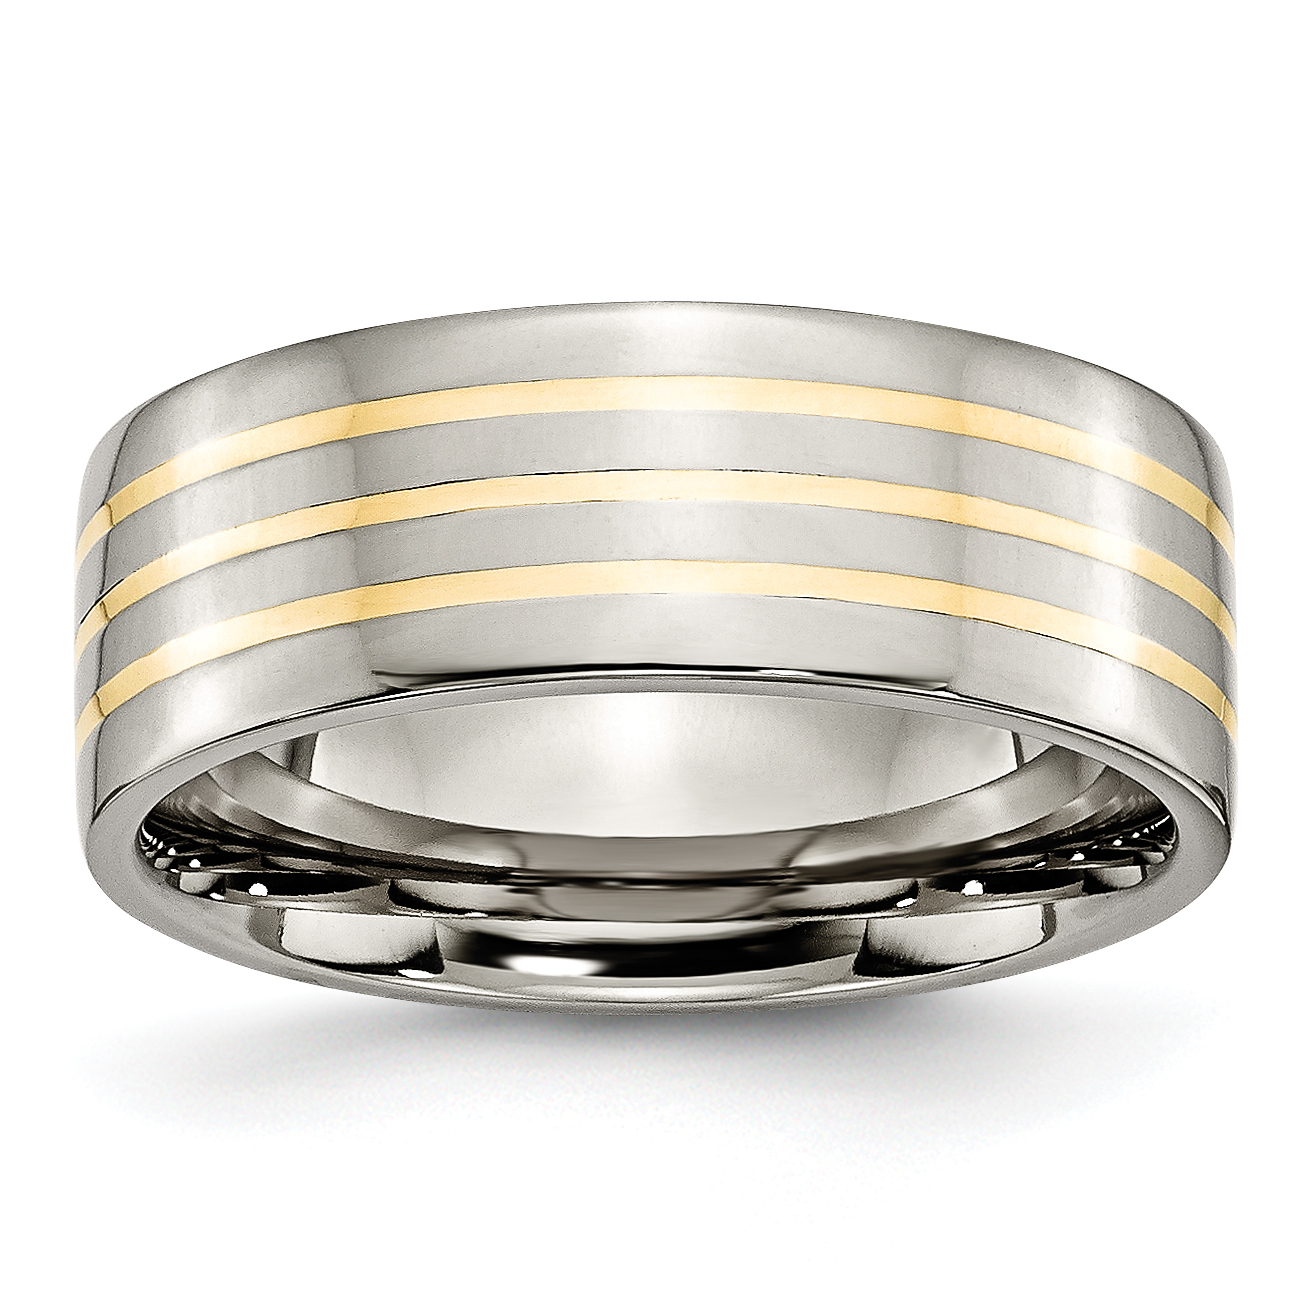 Jewelry & Watches Titanium Flat 8mm 925 Sterling Silver Inlay Brushed Wedding Ring Band Size 9.00